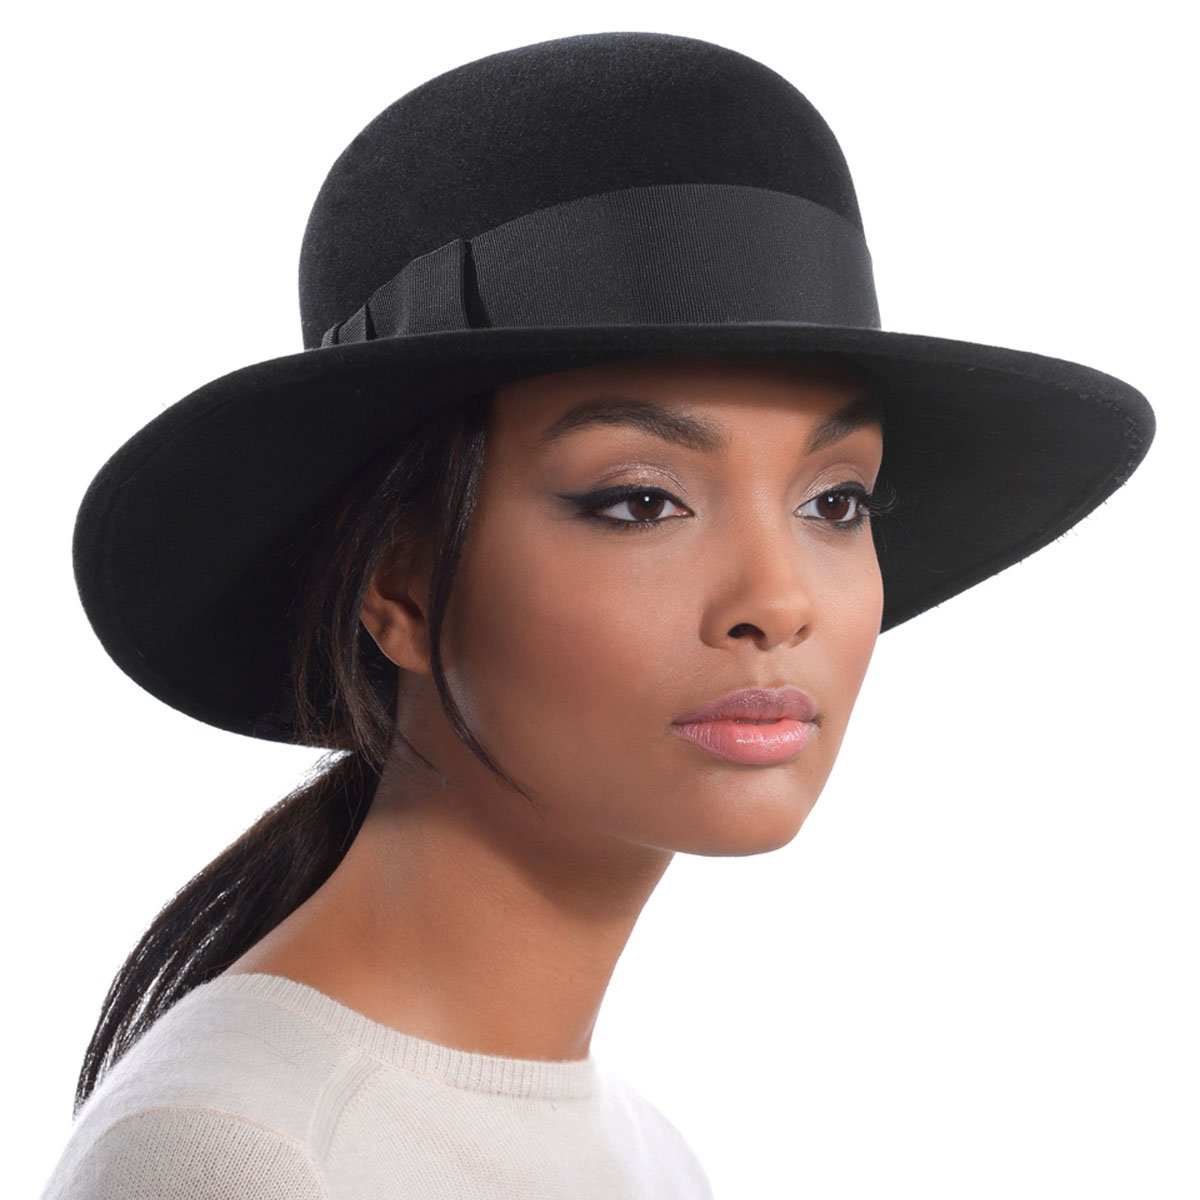 CDM product Eric Javits Luxury Fashion Designer Women's Headwear Hat - Padre - Black small thumbnail image